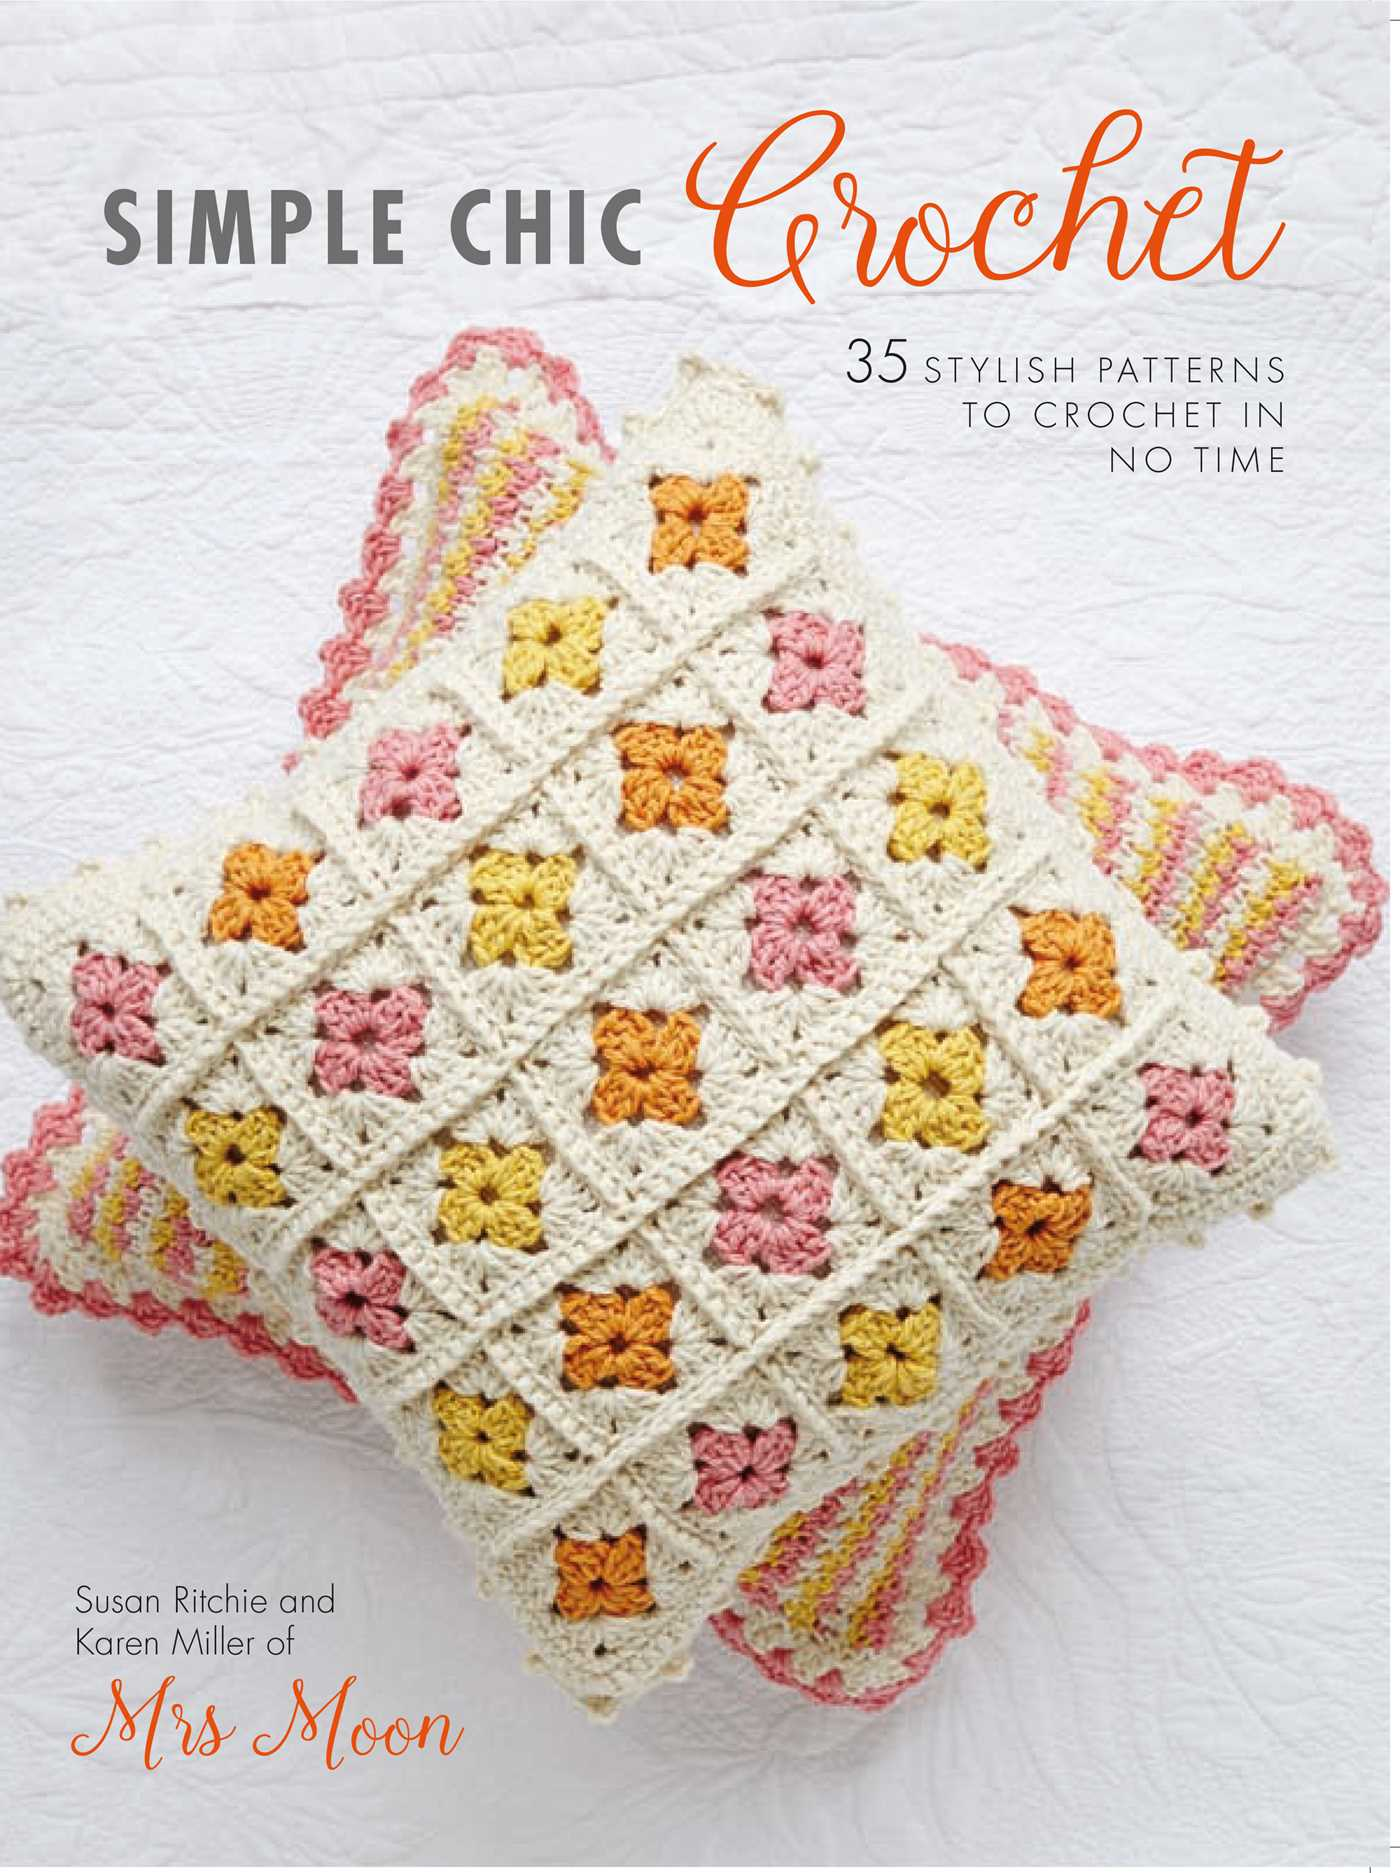 Easy Crochet Book Cover : Simple chic crochet book by susan ritchie karen miller